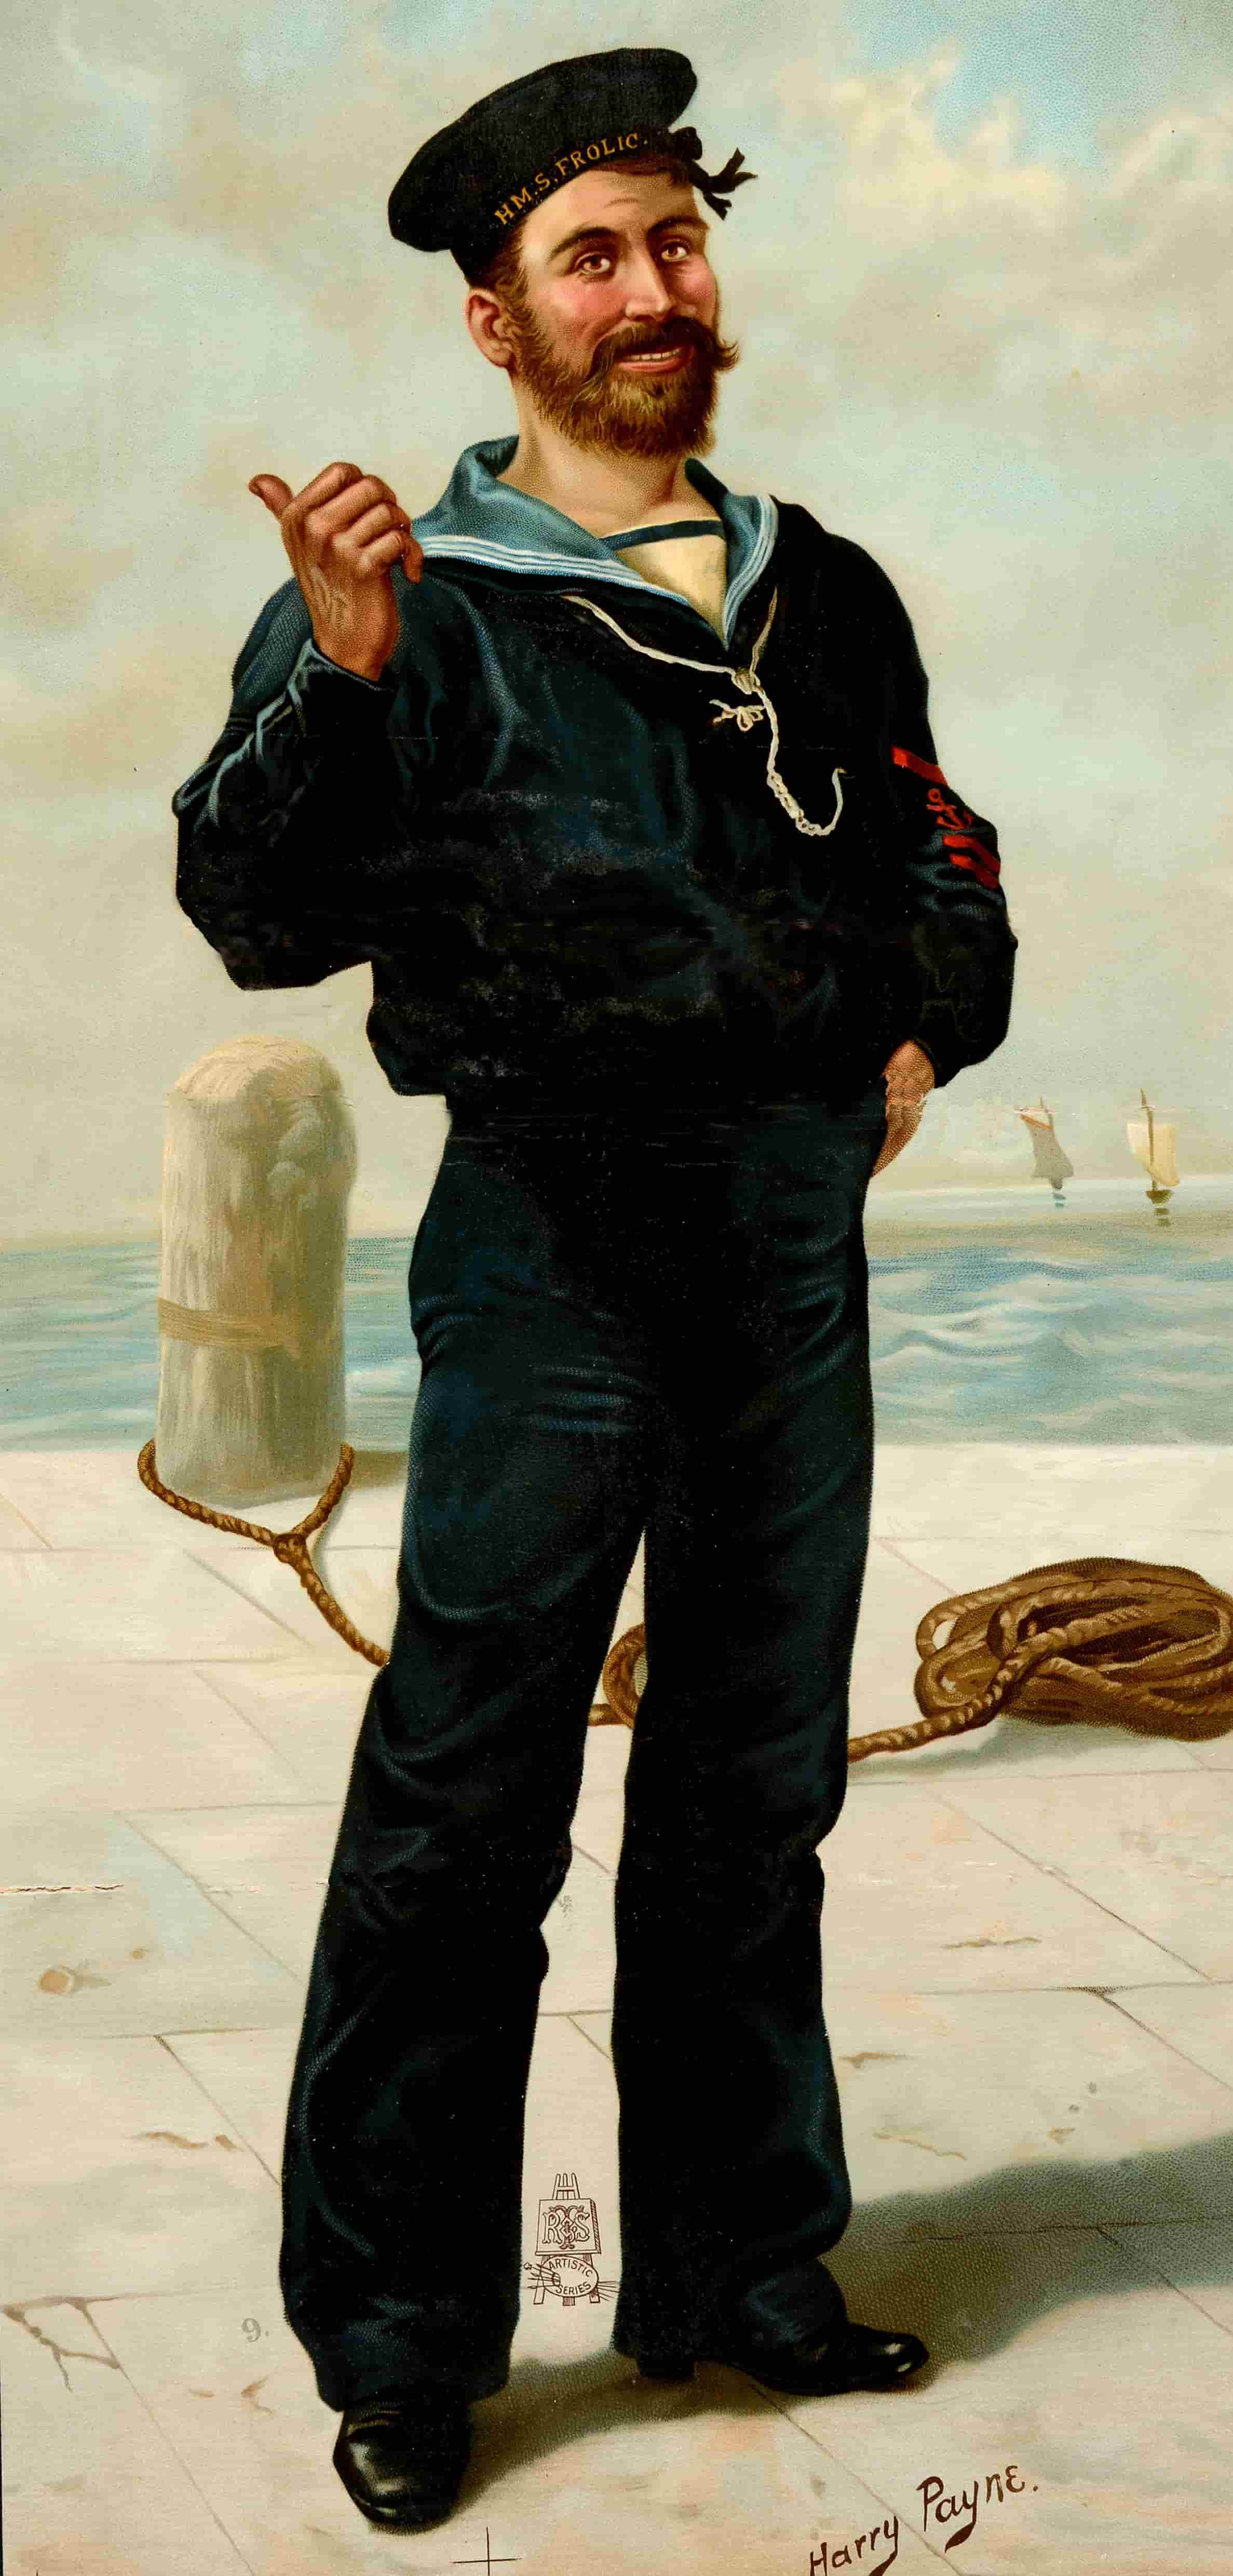 Image of 'Jack Tar' (a common term for sailors) by Harry Payne, 1893. Catalogue reference: COPY 1/108/436